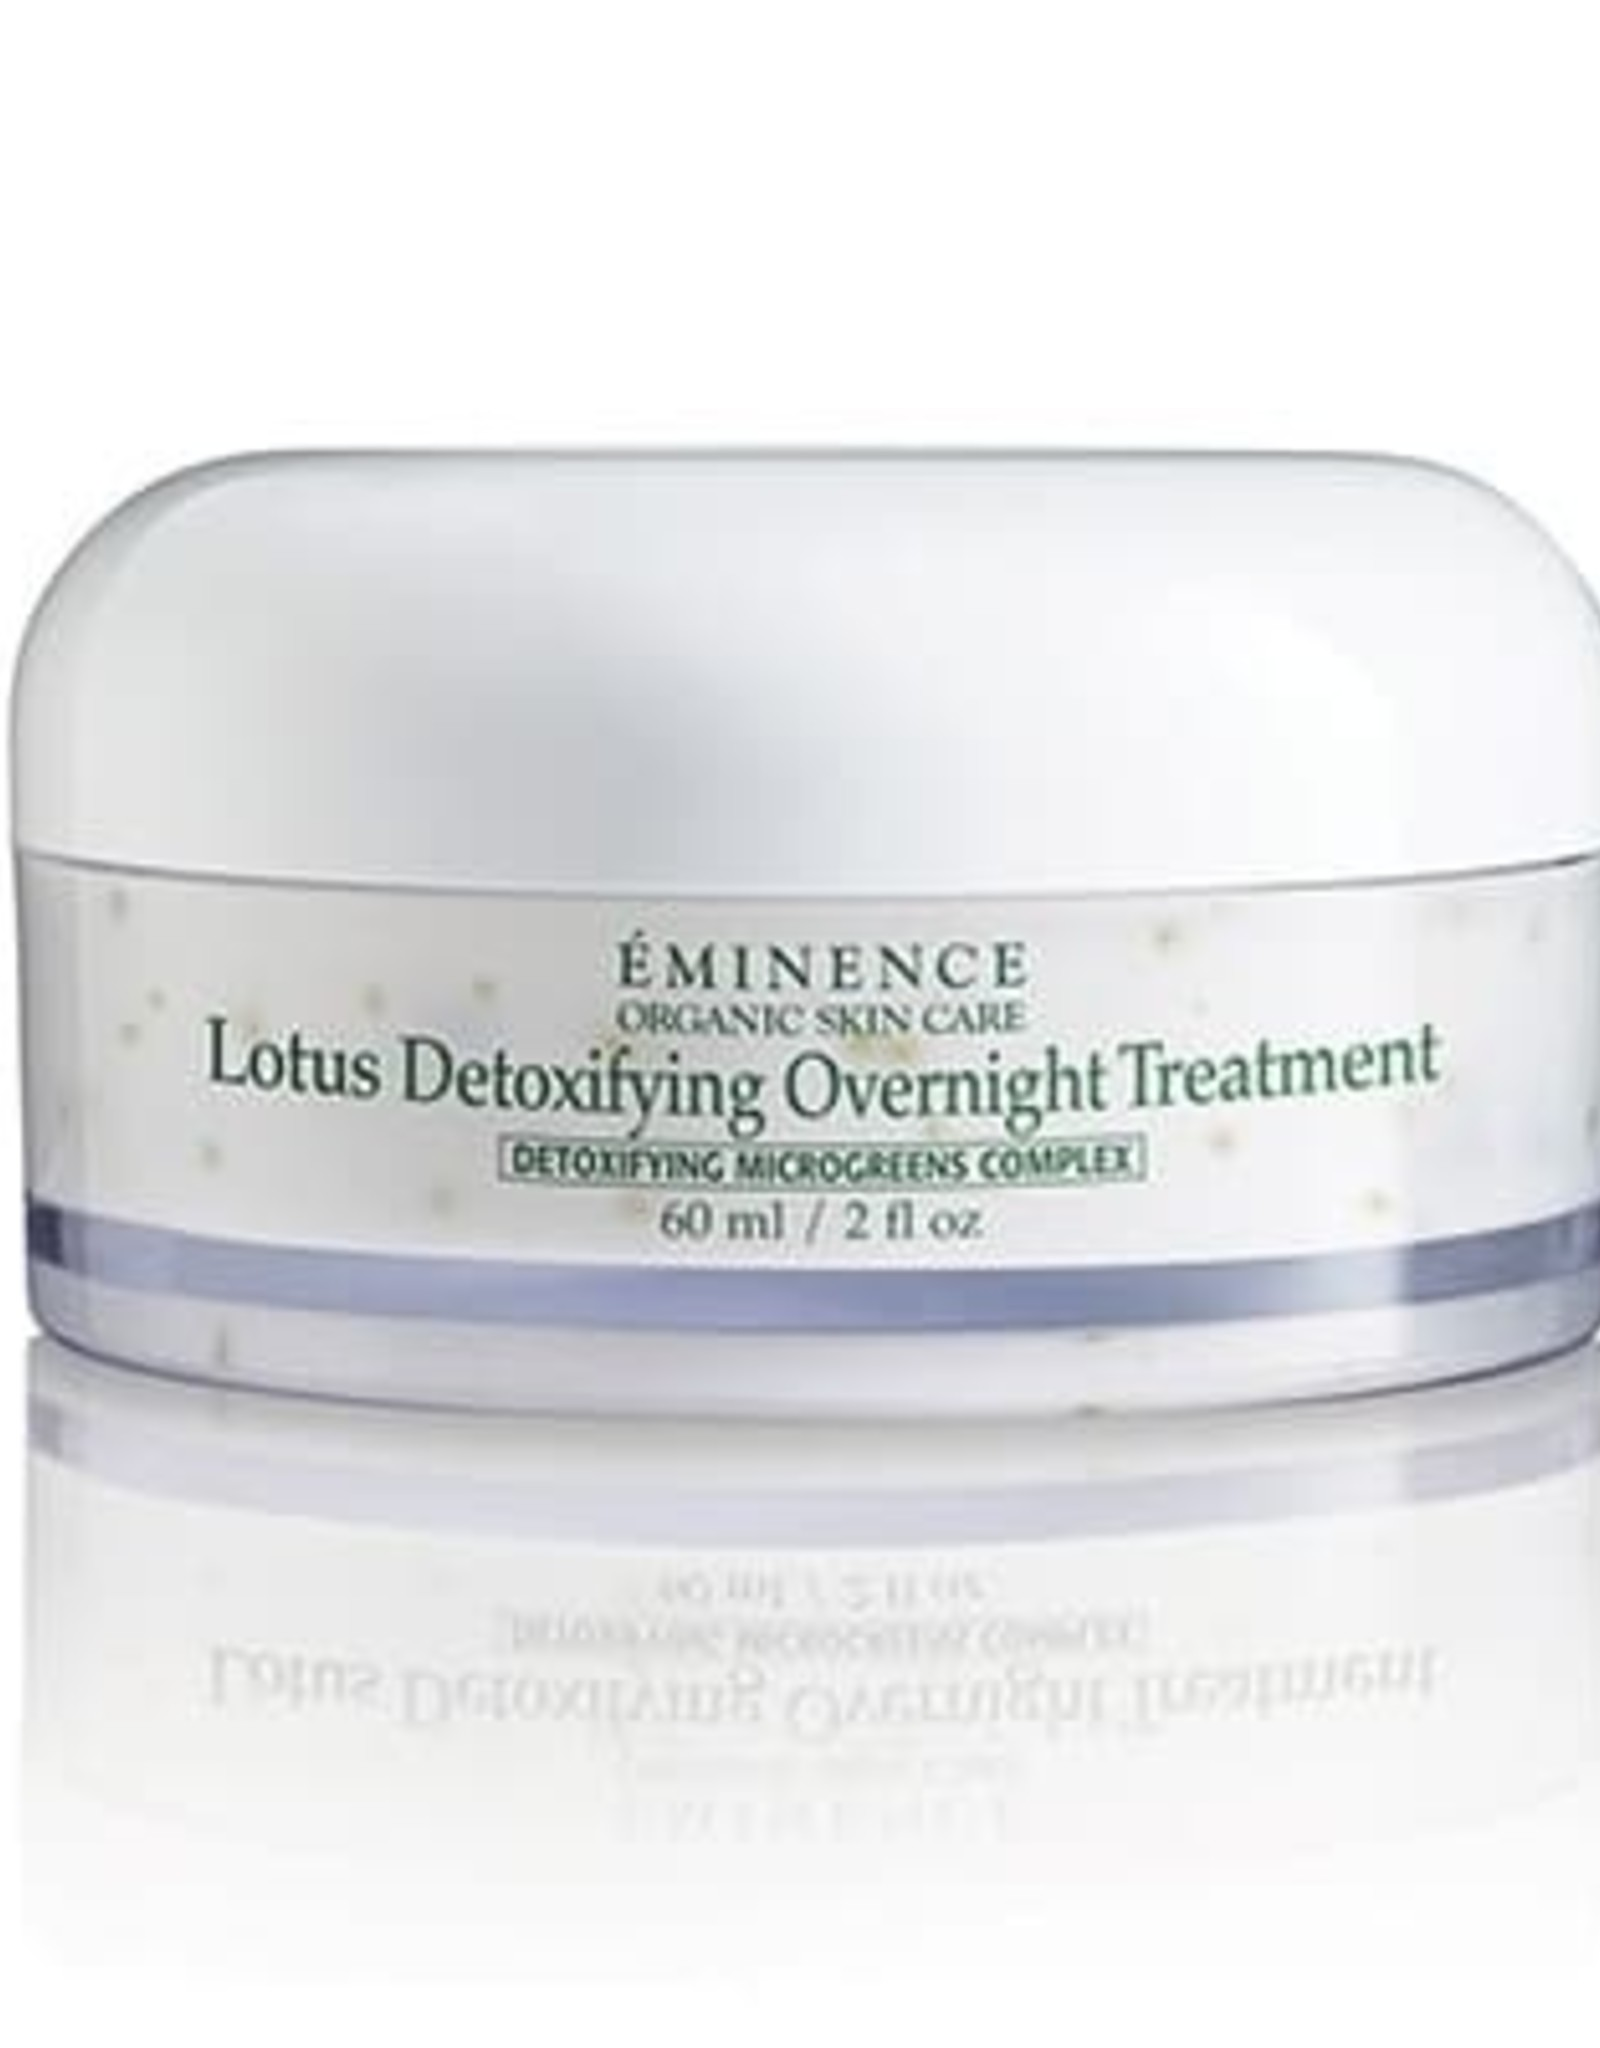 Eminence Lotus Detoxifying Overnight Treatment